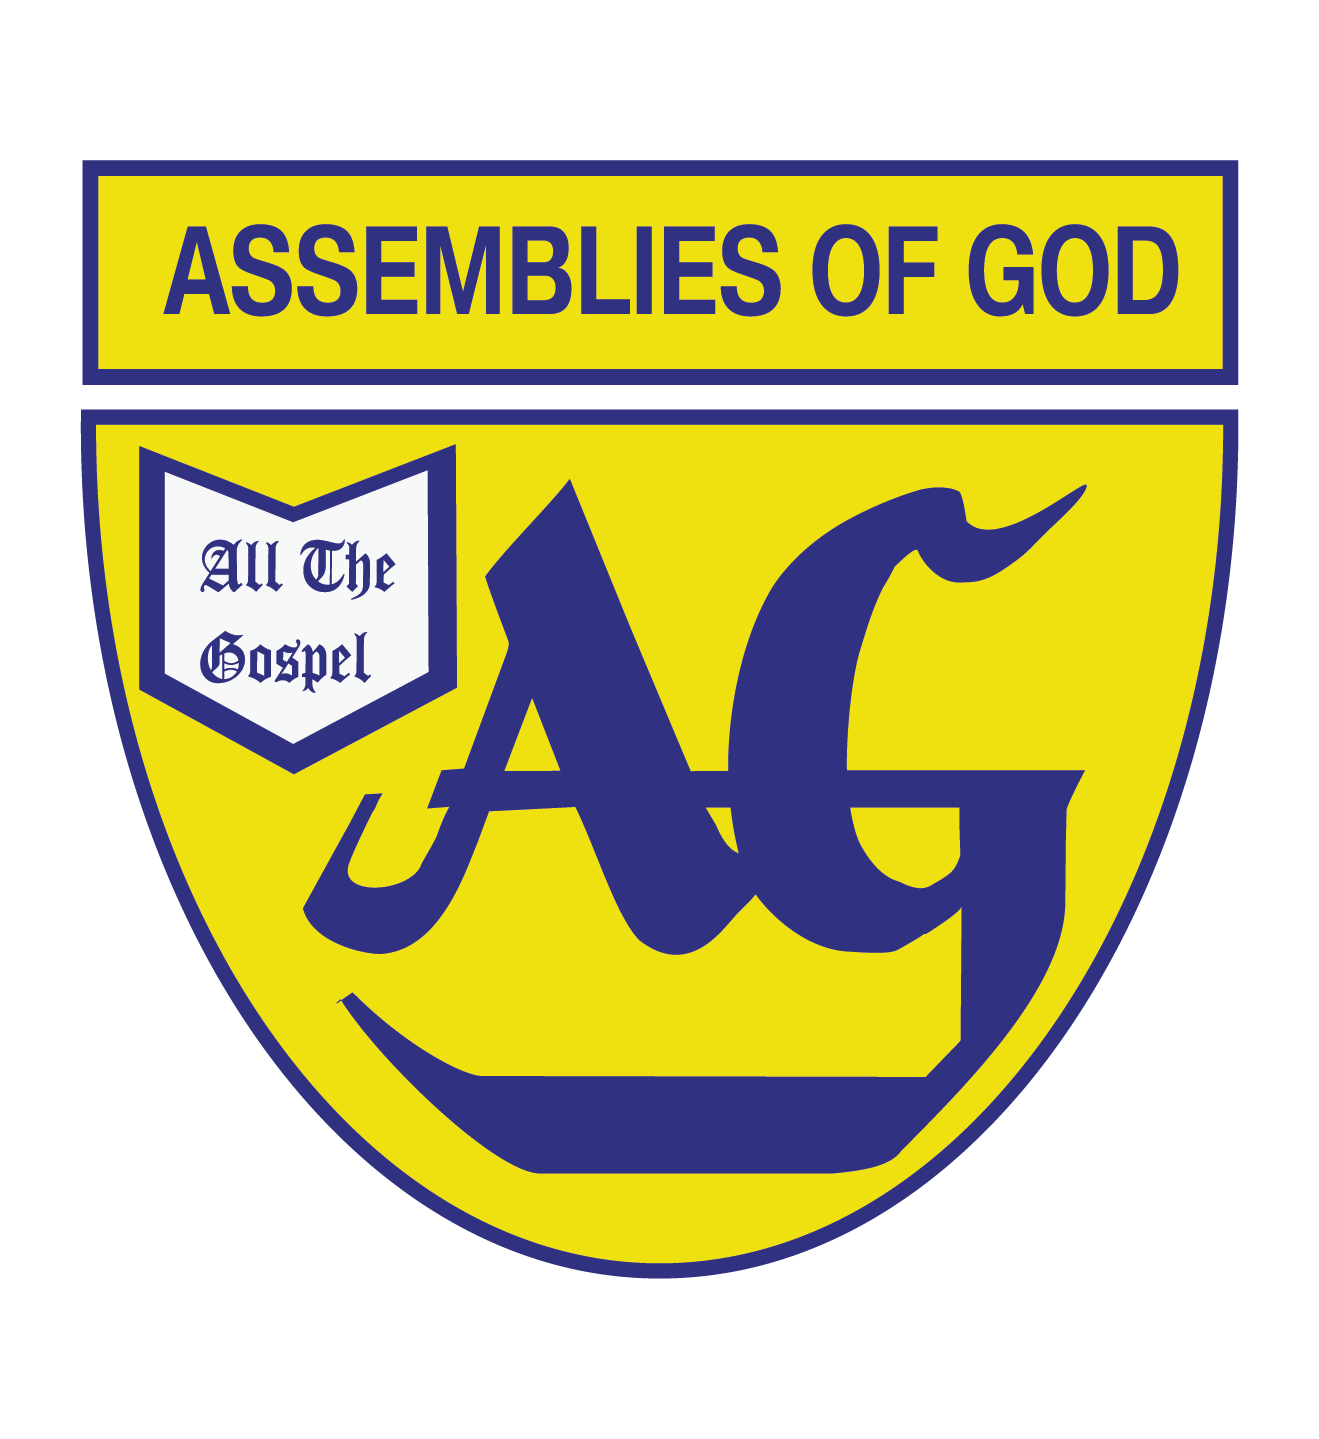 Assemblies of god logo png. Welcomes tax on churches